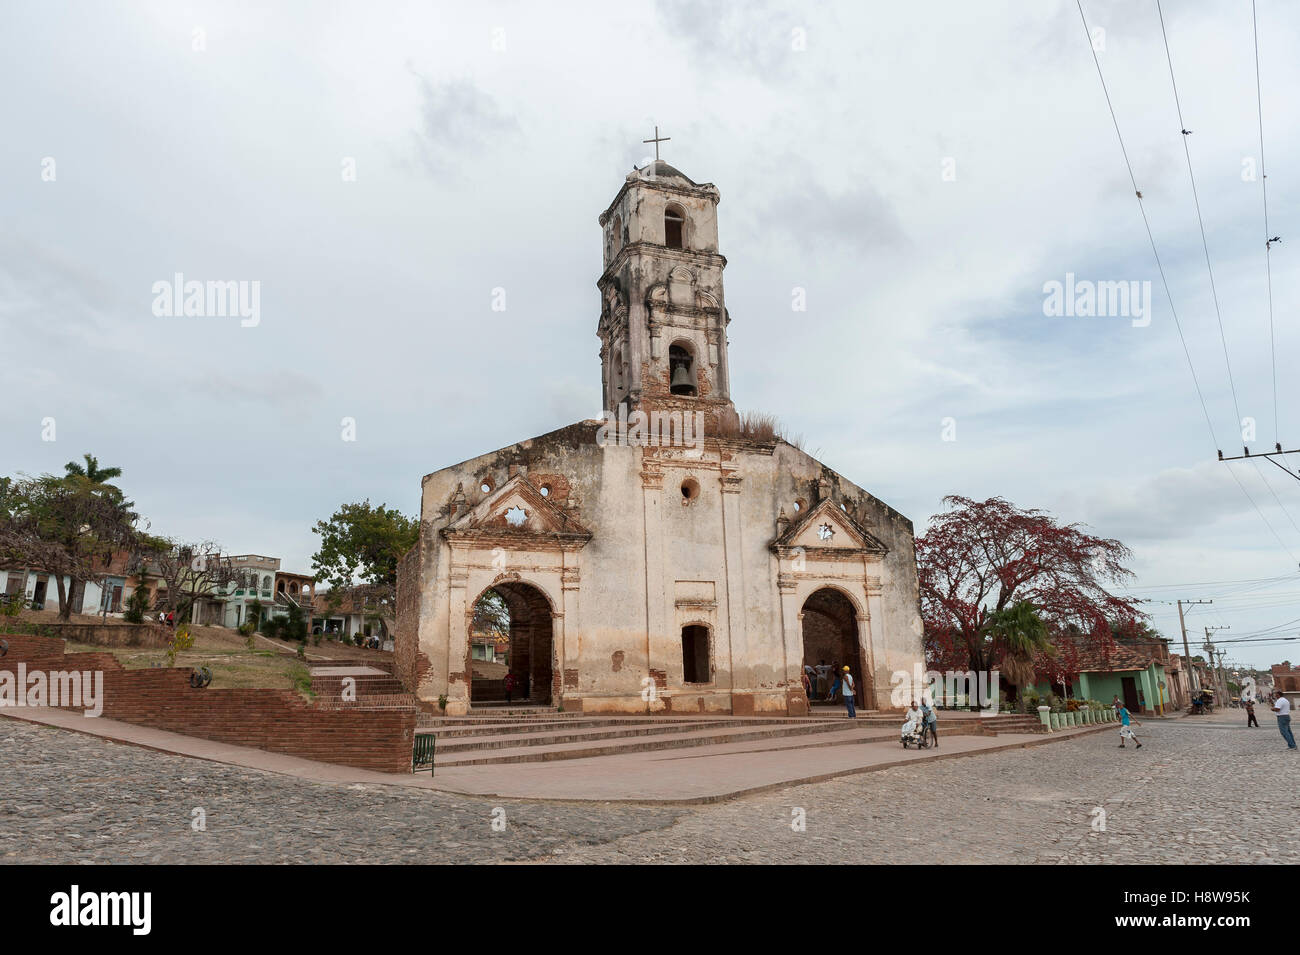 Facade of old colonial church ruins in Trinidad, Cuba - Stock Image